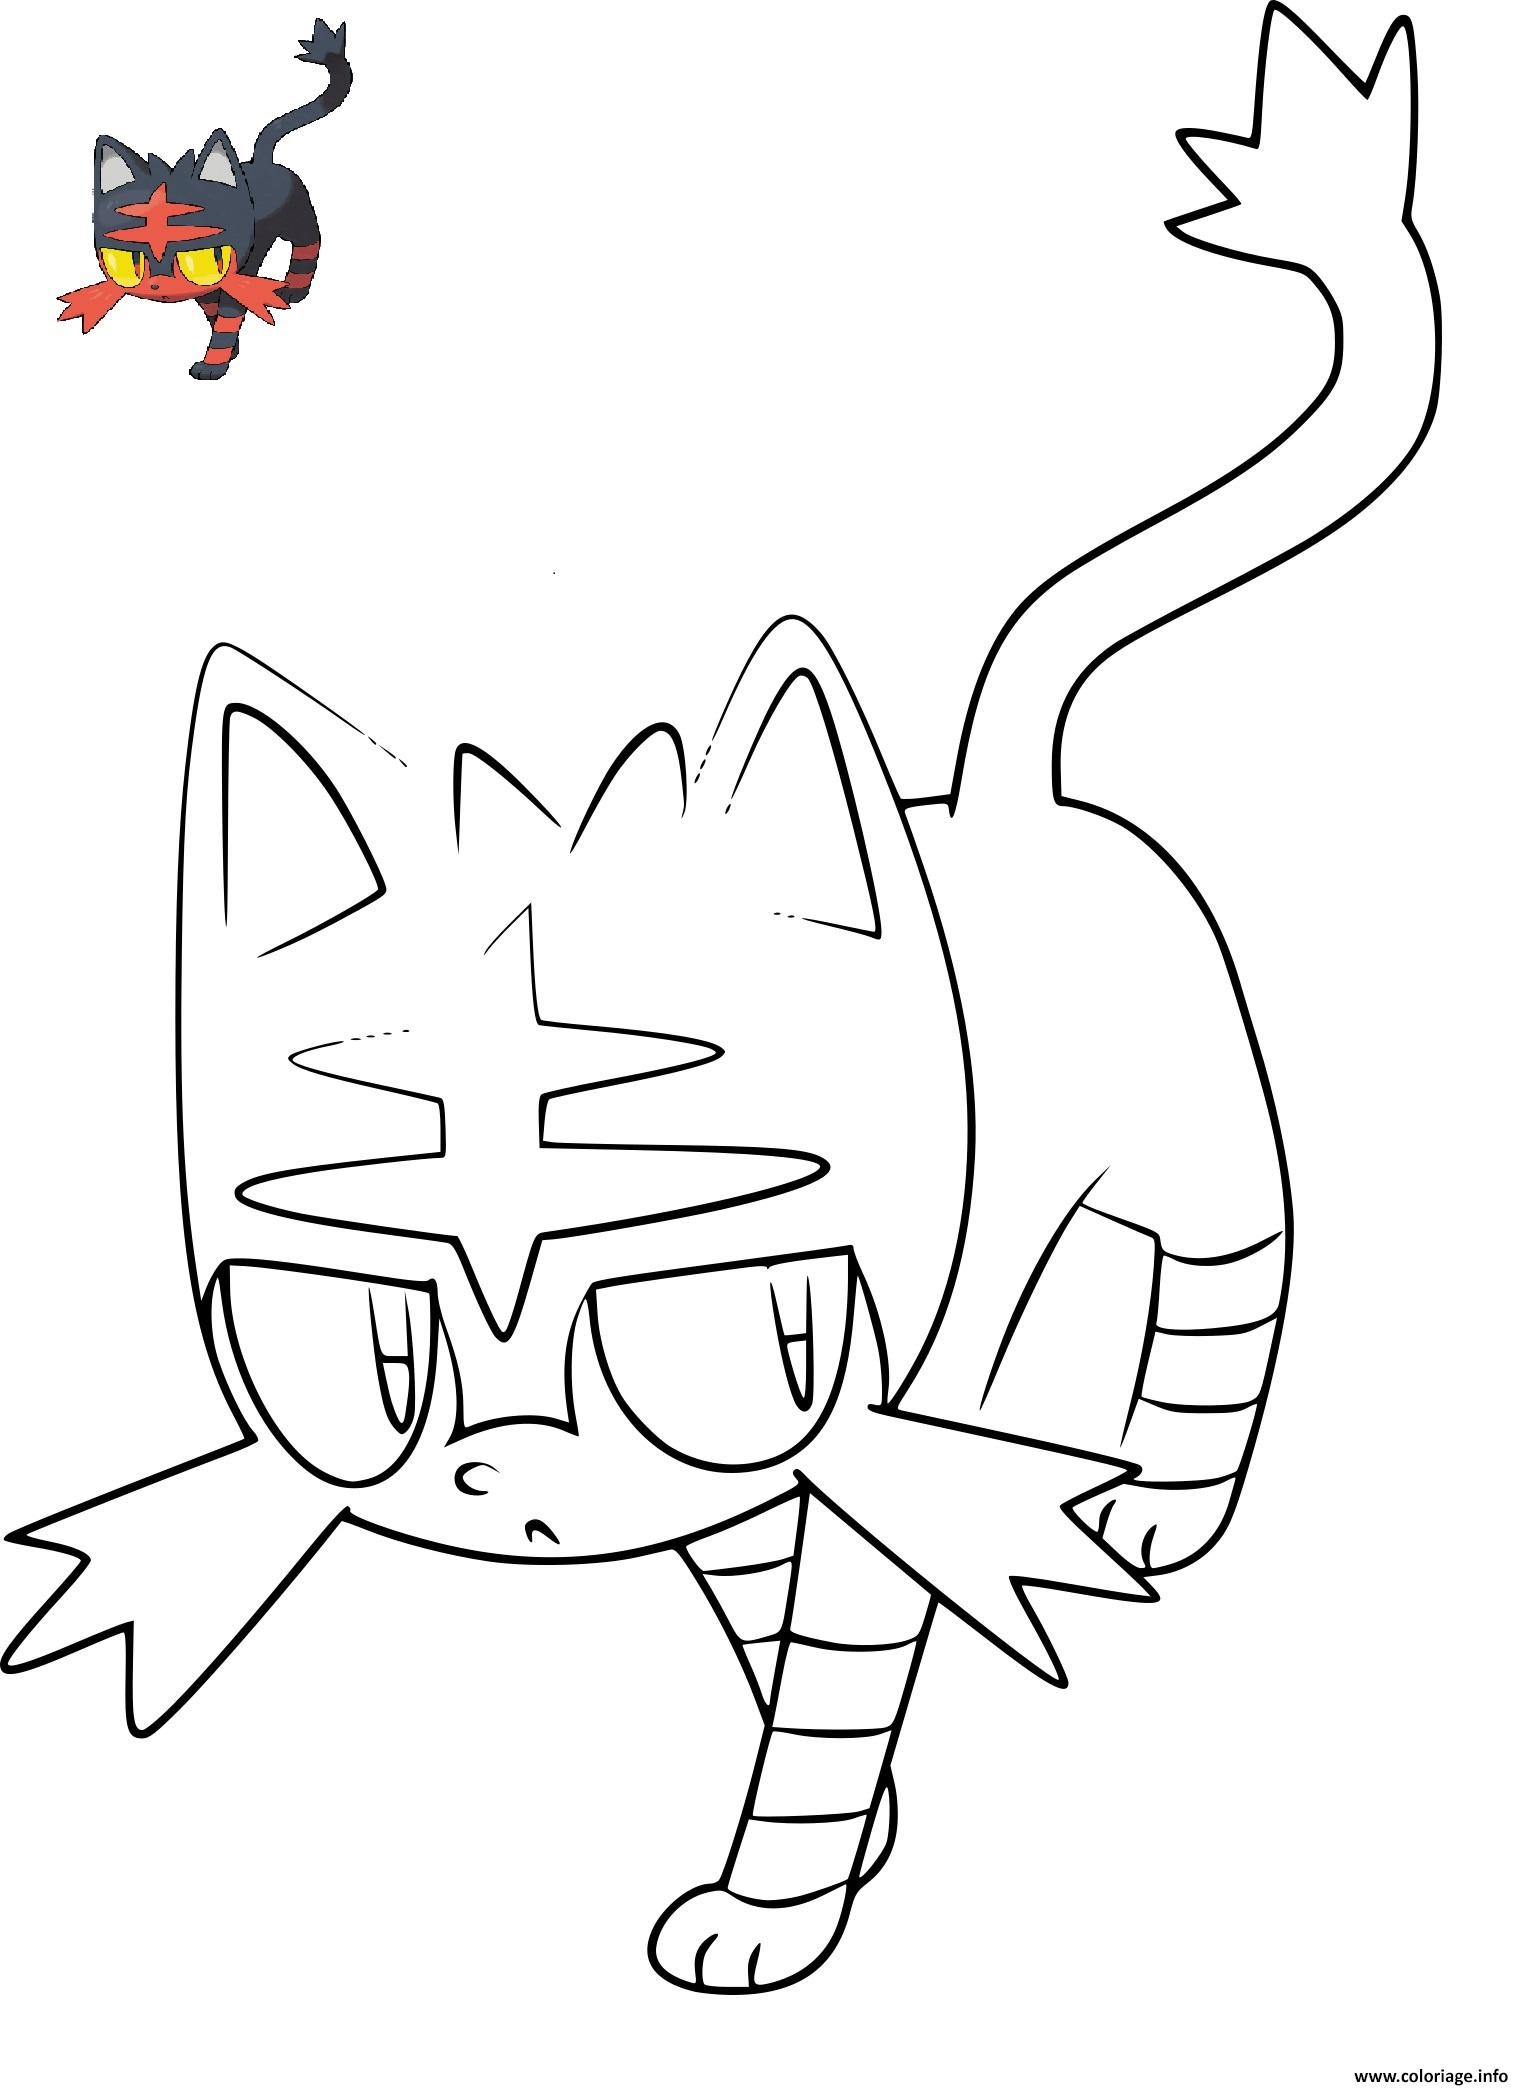 Coloriage pokemon flamiaou dessin - Dessin colorier ...